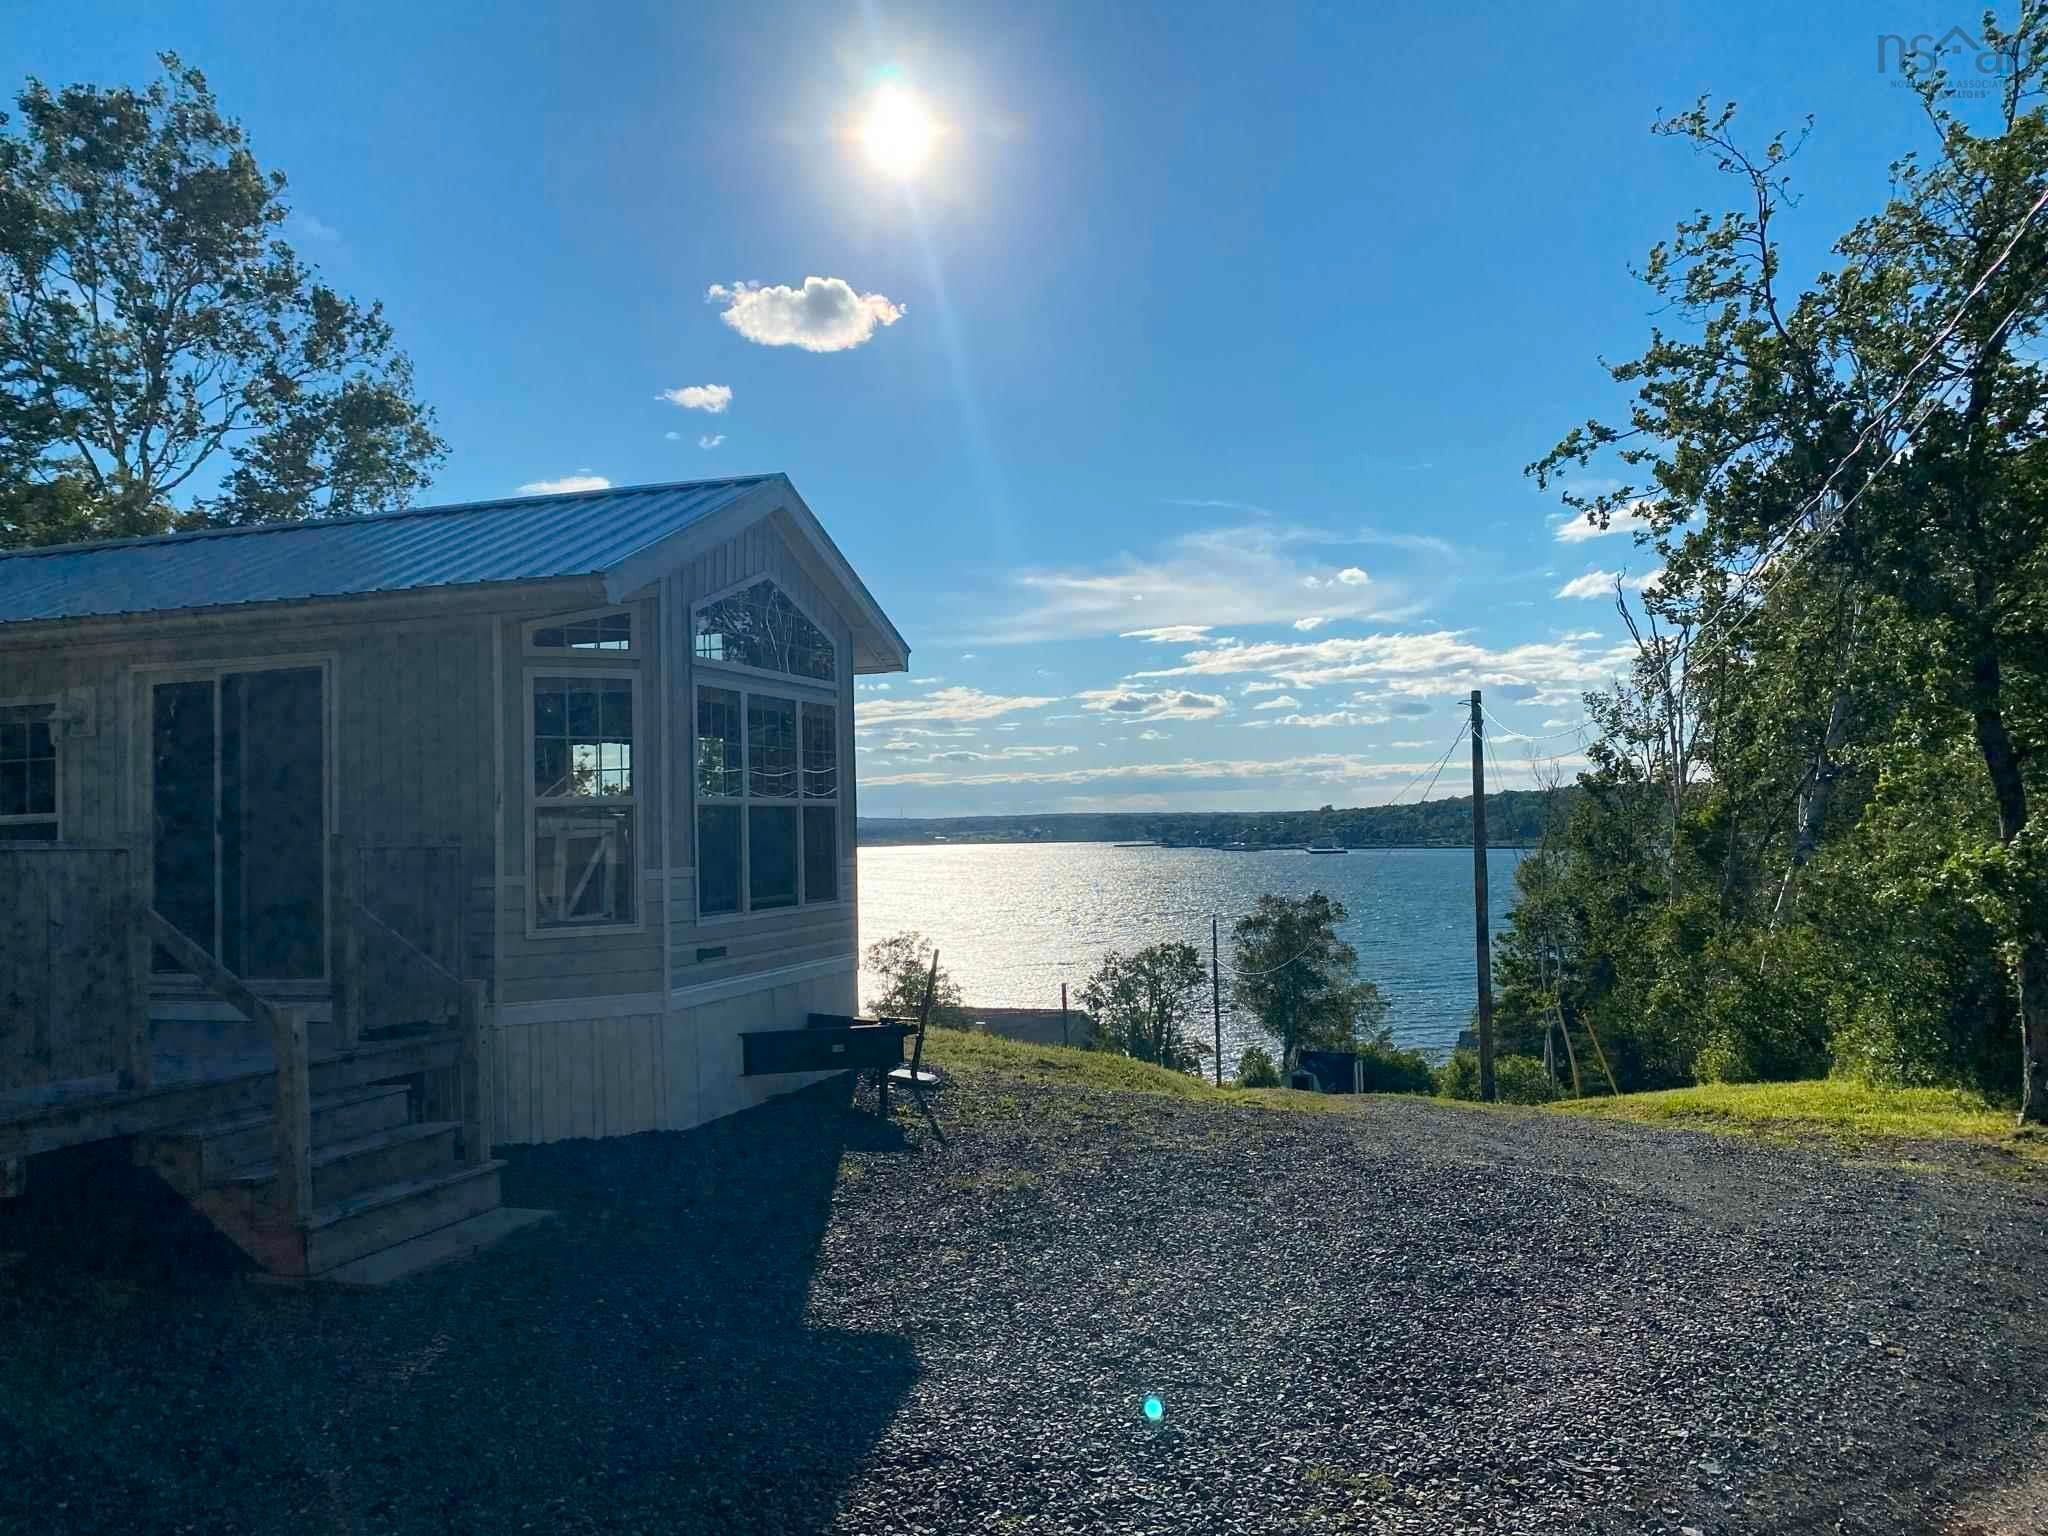 Main Photo: 206 Lower Road in Pictou Landing: 108-Rural Pictou County Residential for sale (Northern Region)  : MLS®# 202124993